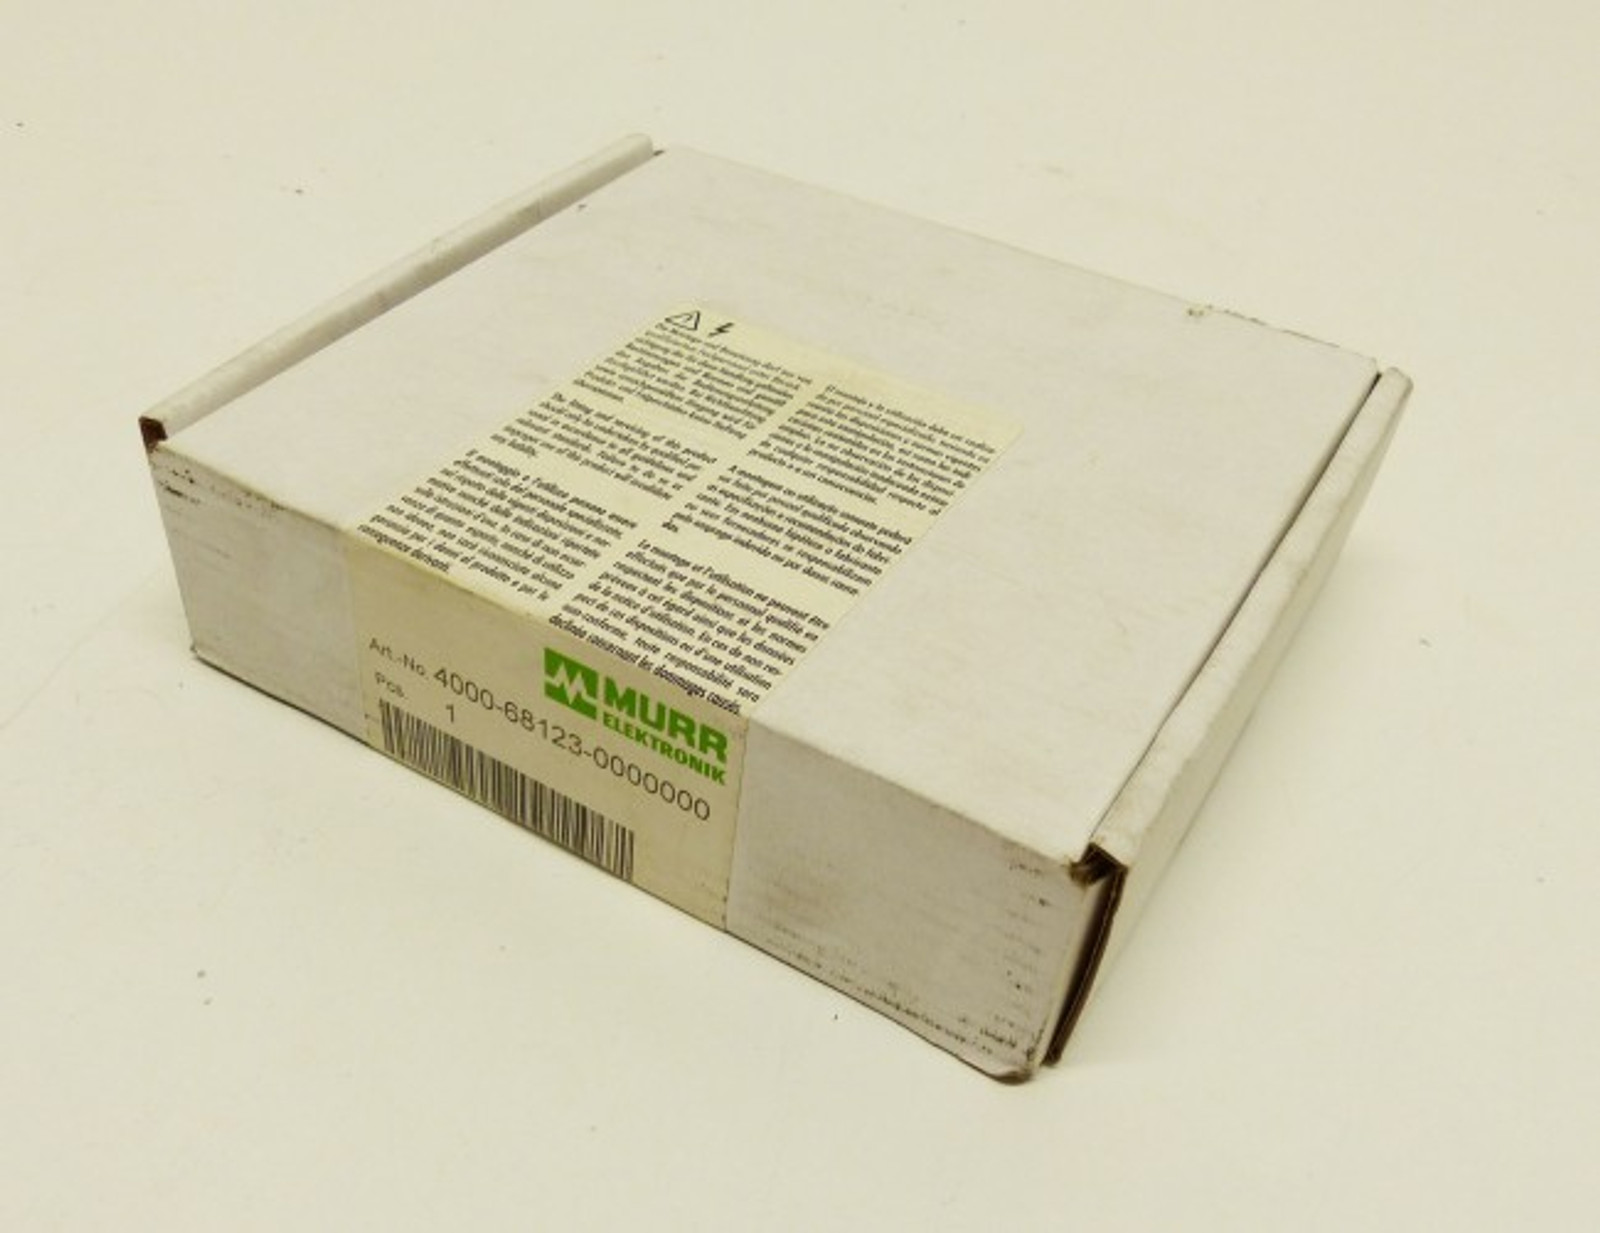 MURR Elektronik 4000-68123-0000000 -sealed-